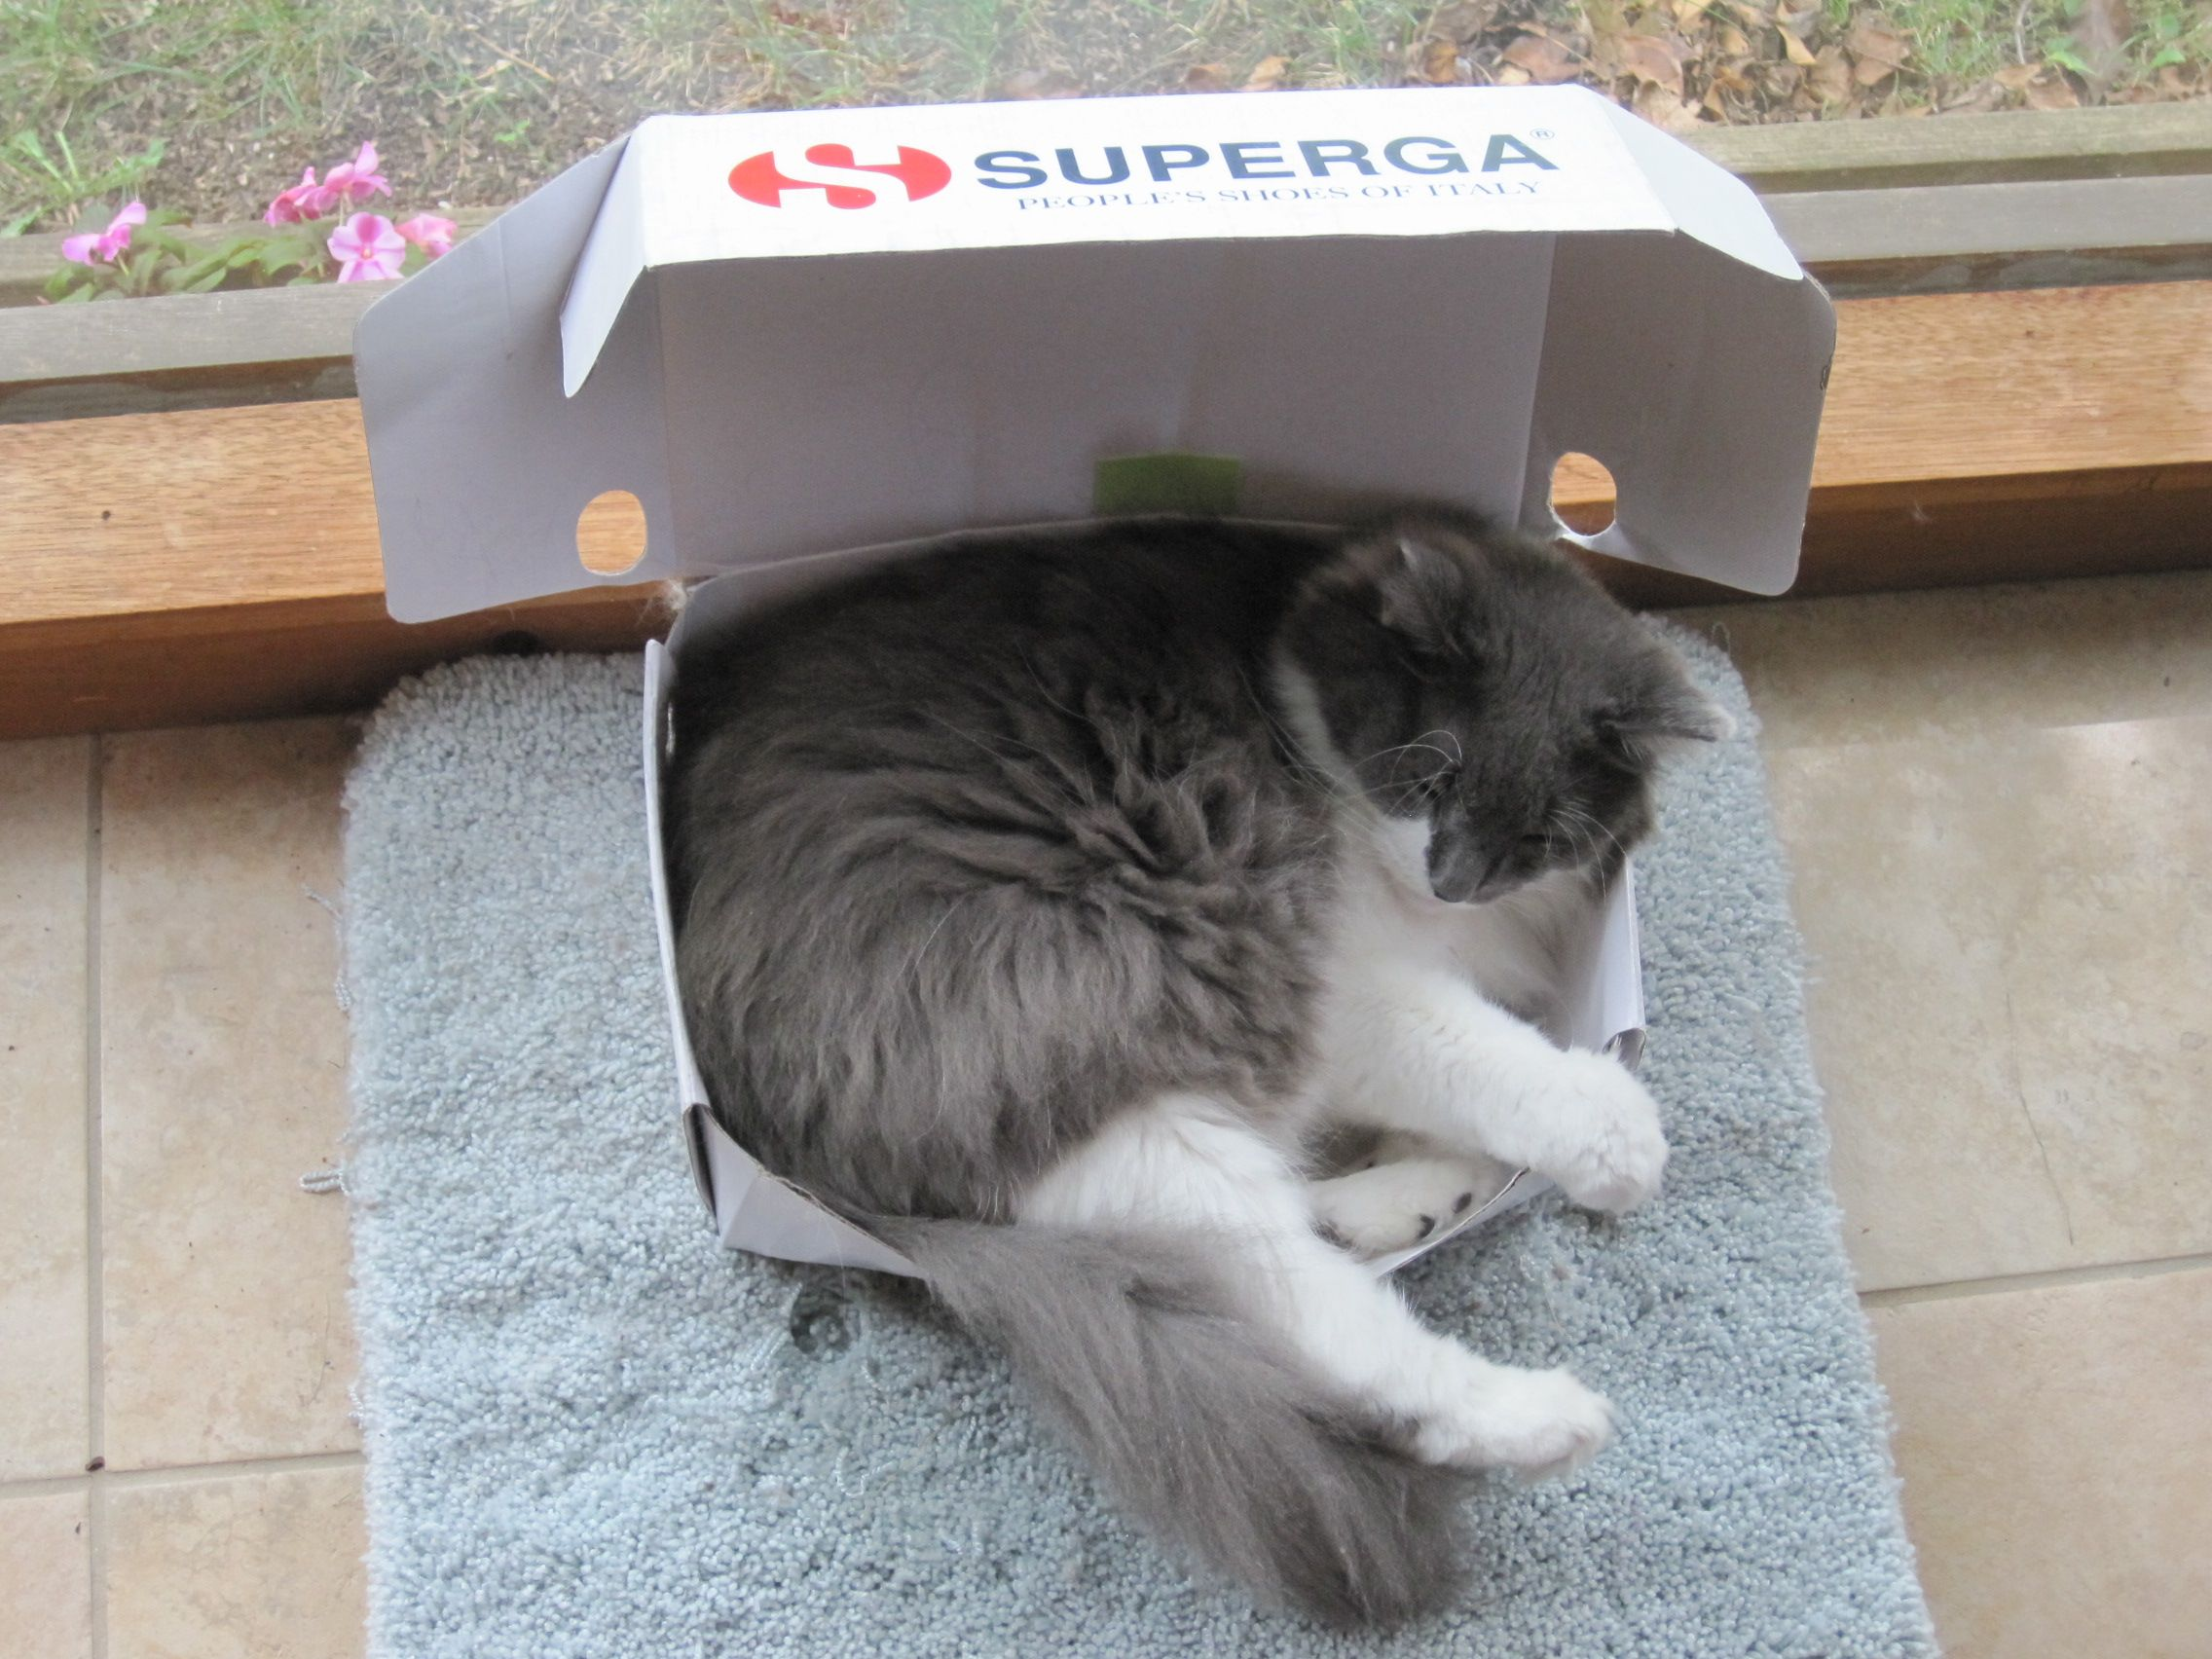 Darn these foreign shoe boxesl!